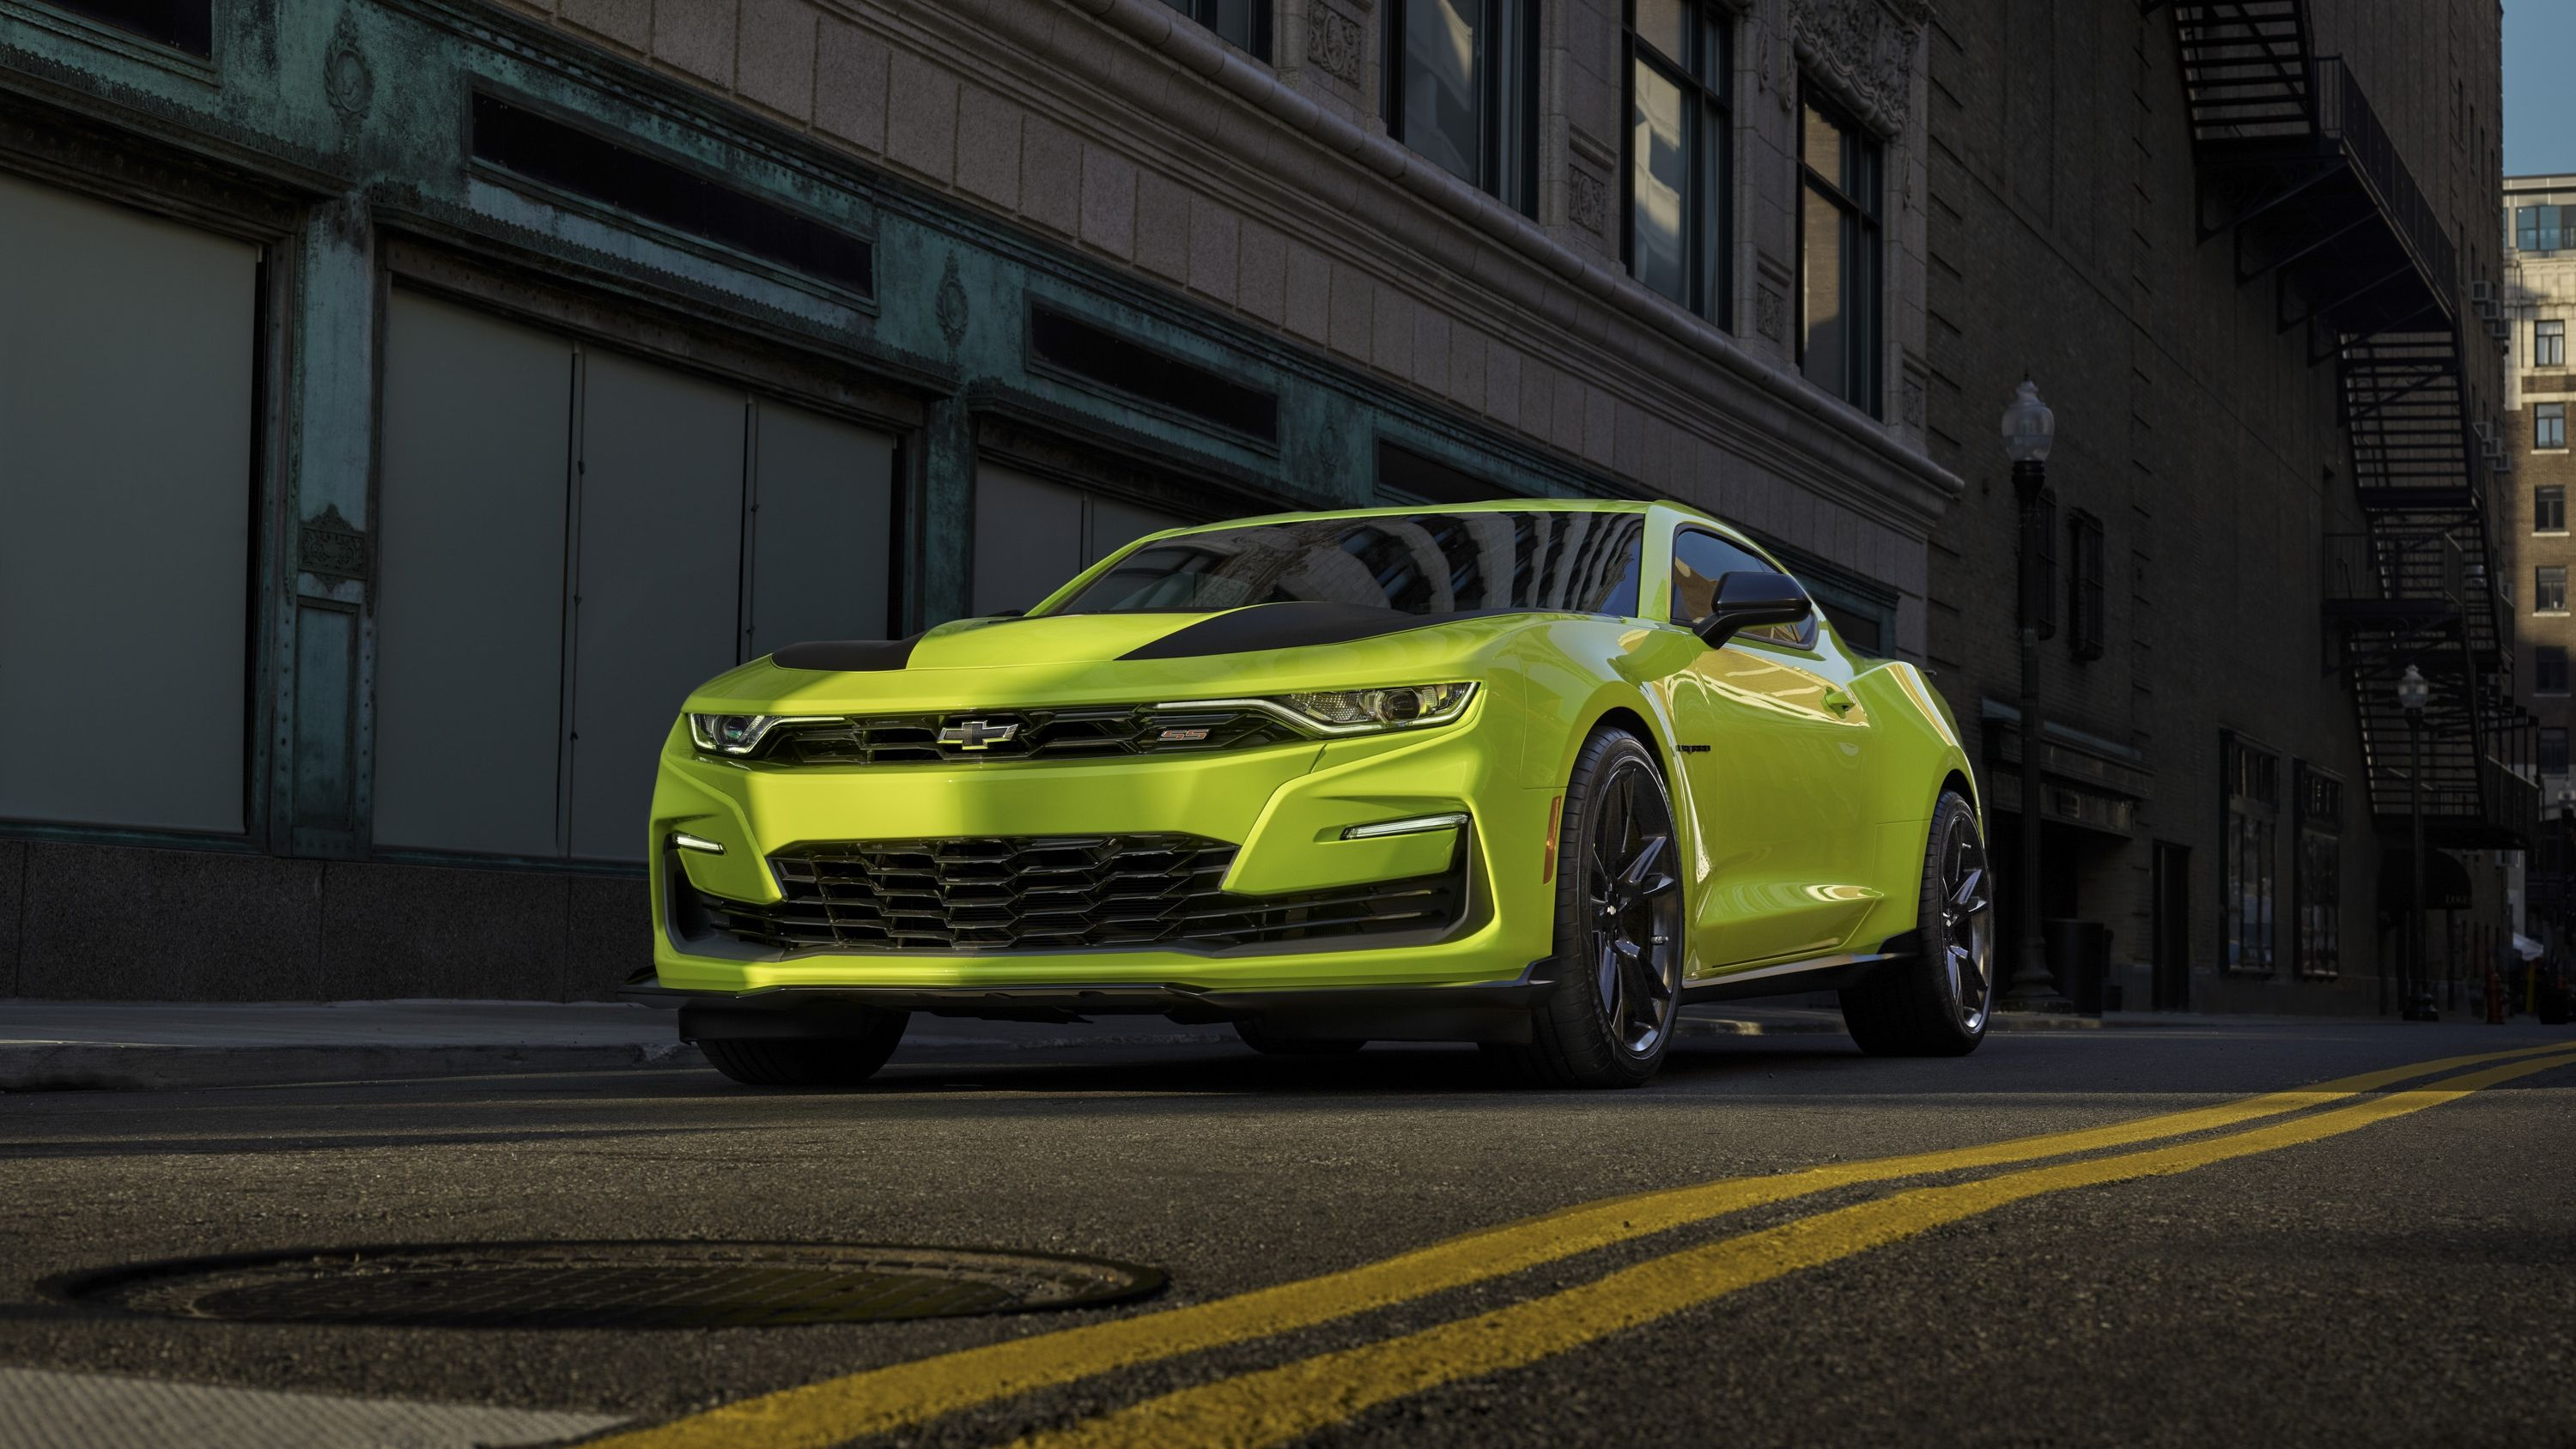 Chevy Is Working Desperately To Move That Sleek Grille The SEMA